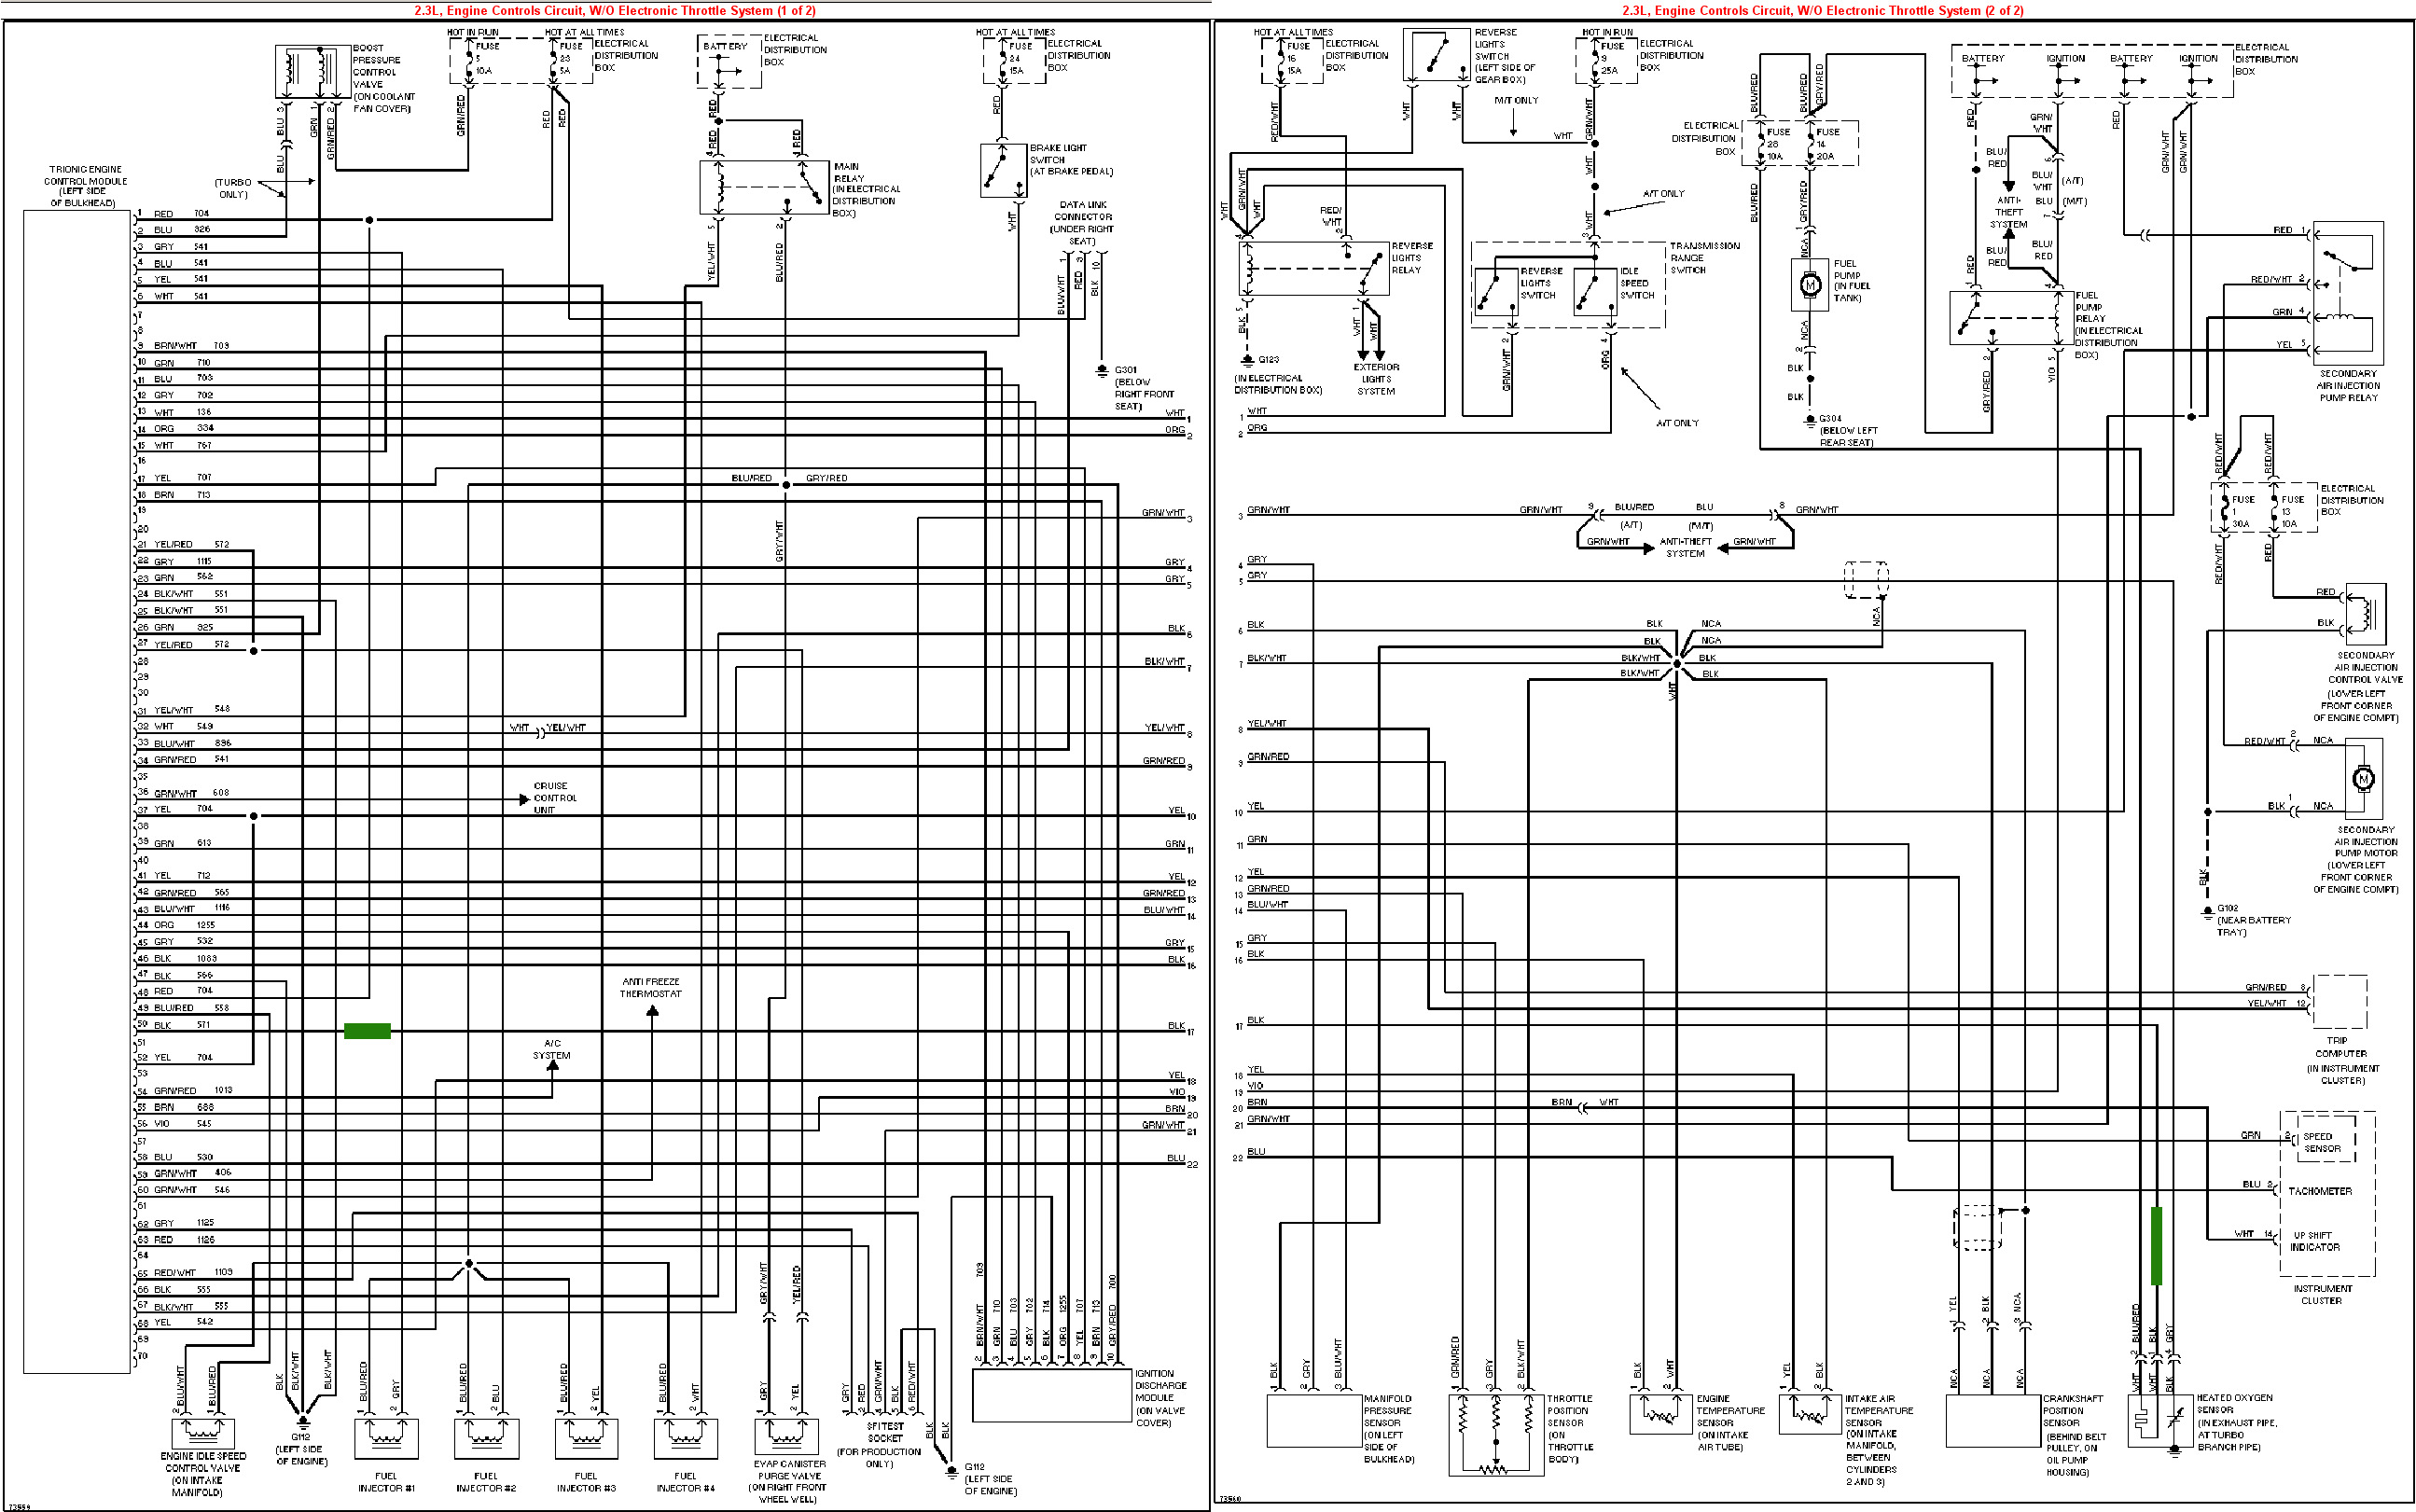 2001 Saab 9 3 Radio Wiring Diagram - 2005 Ford F 250 Trailer Wiring Diagram  for Wiring Diagram SchematicsWiring Diagram Schematics